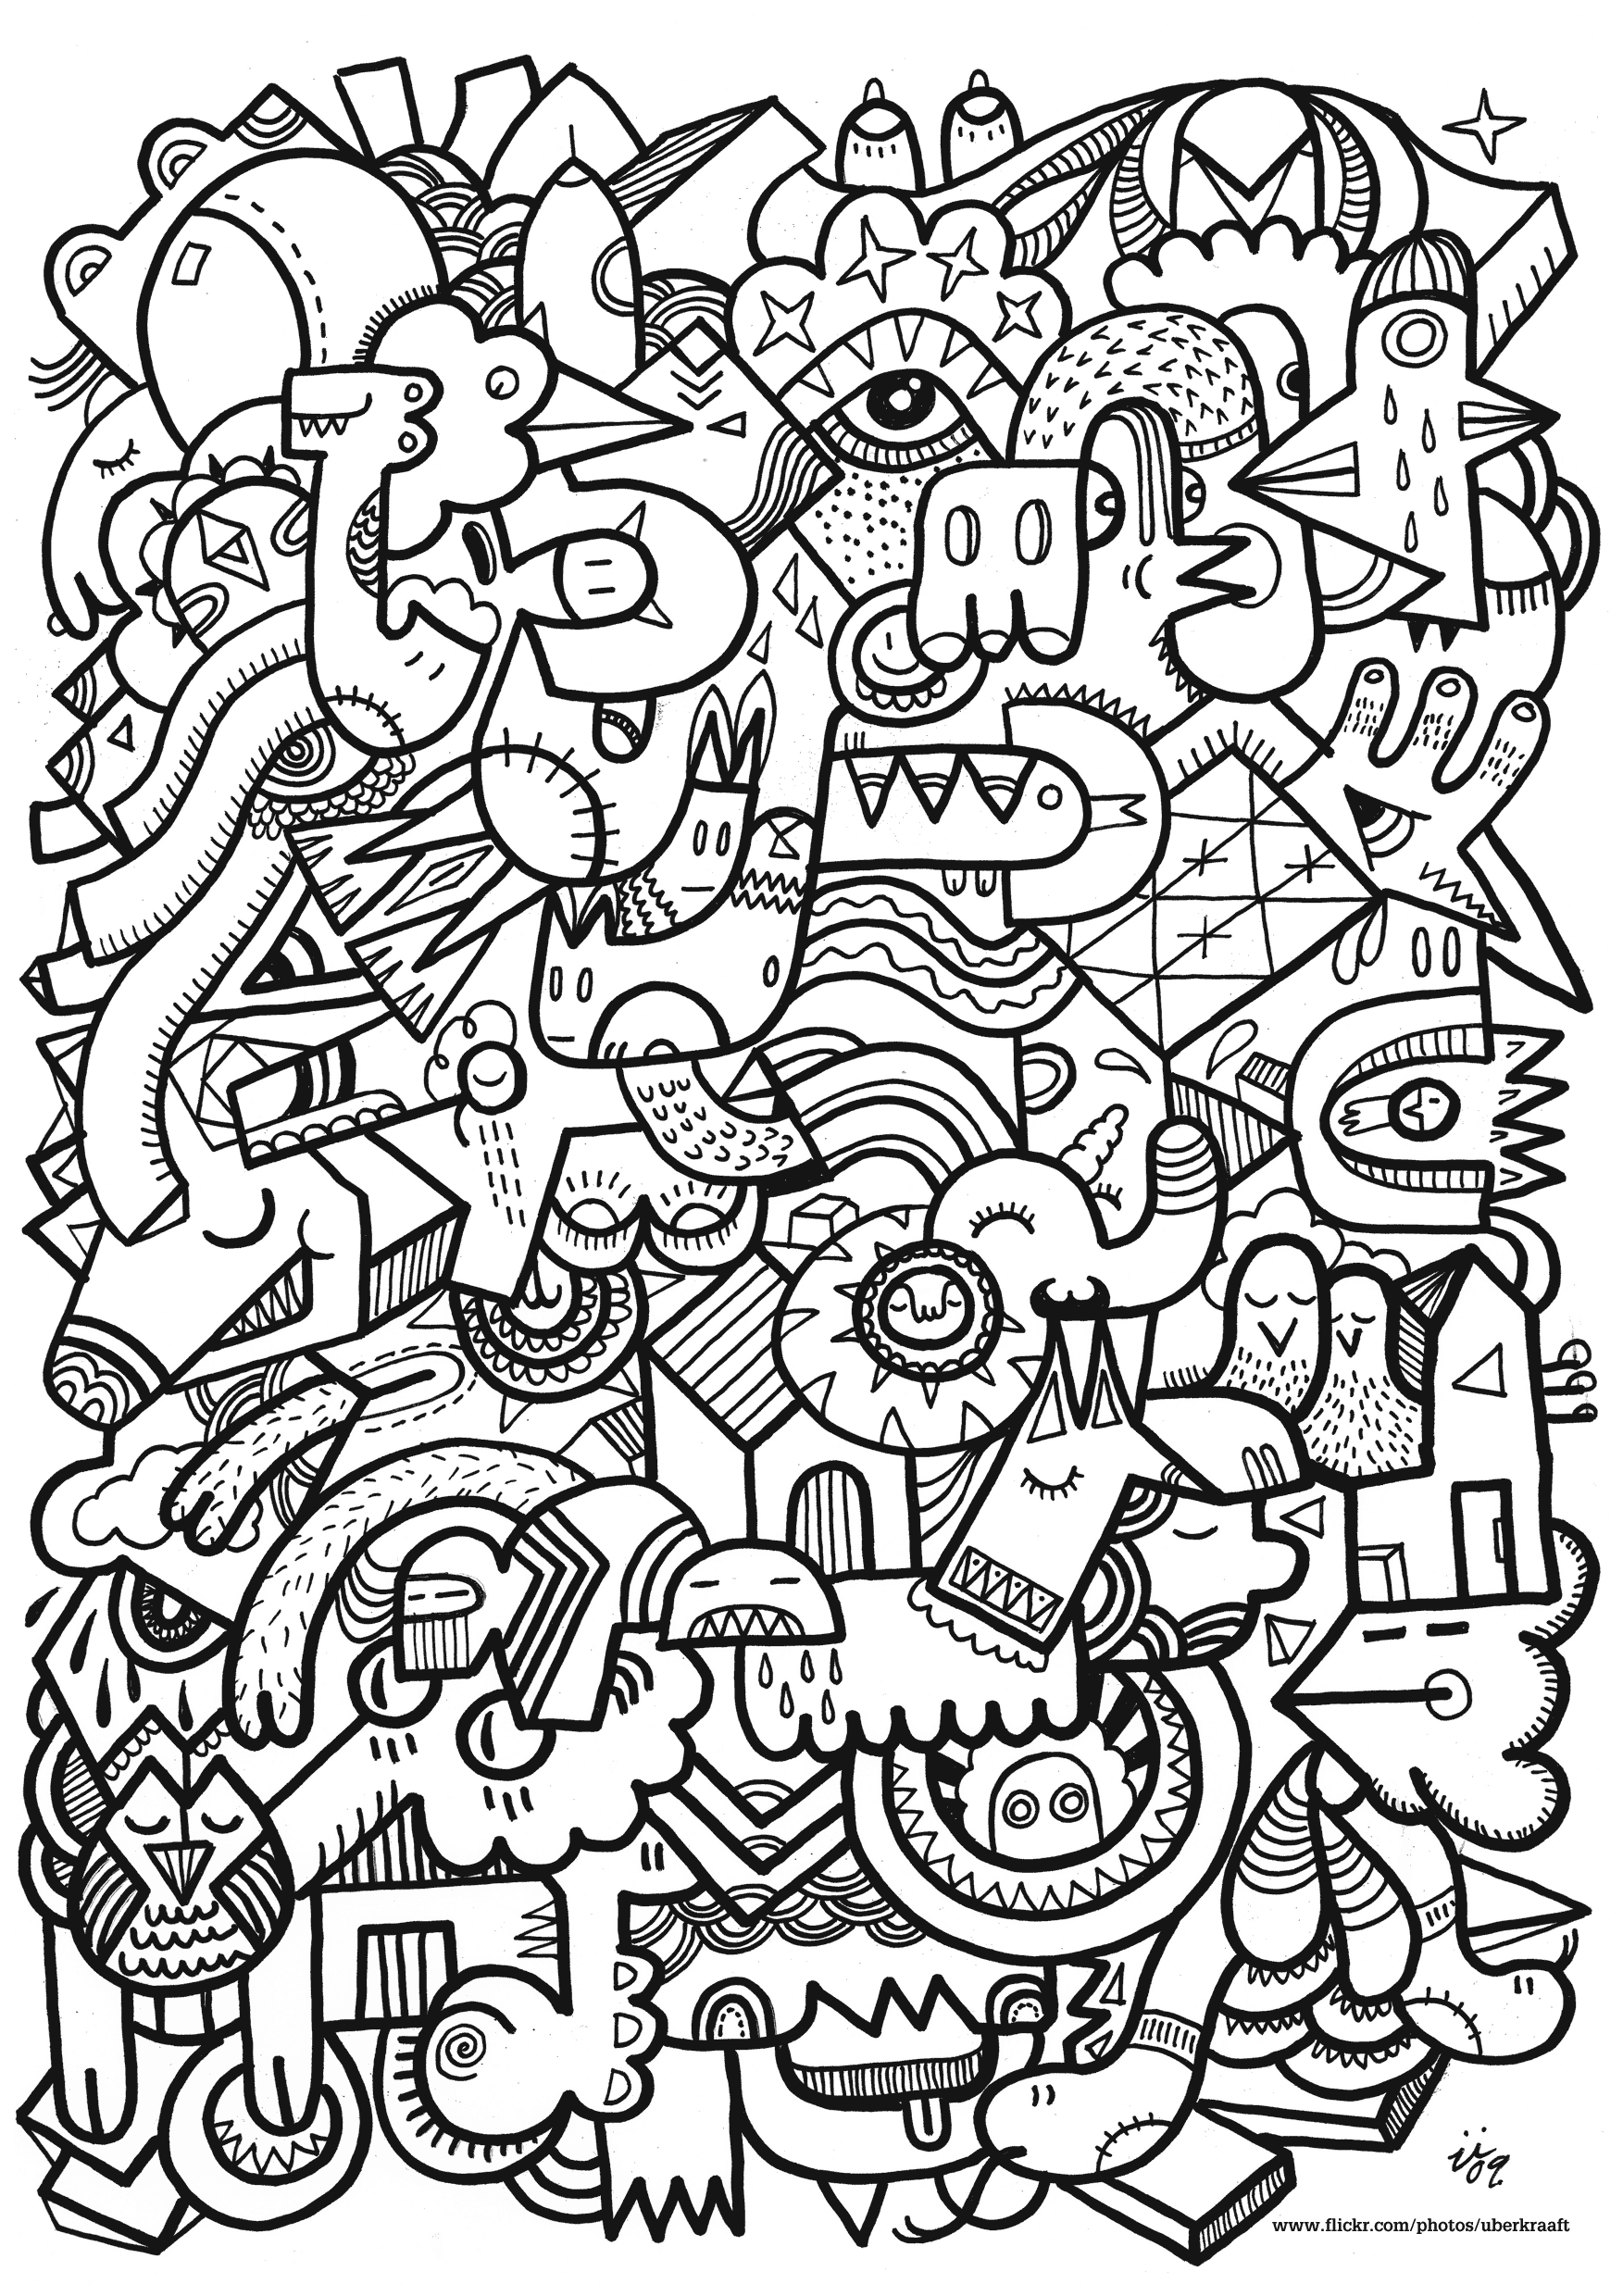 patterns difficult colouring pages dessin illustration et - Challenging Dragon Coloring Pages